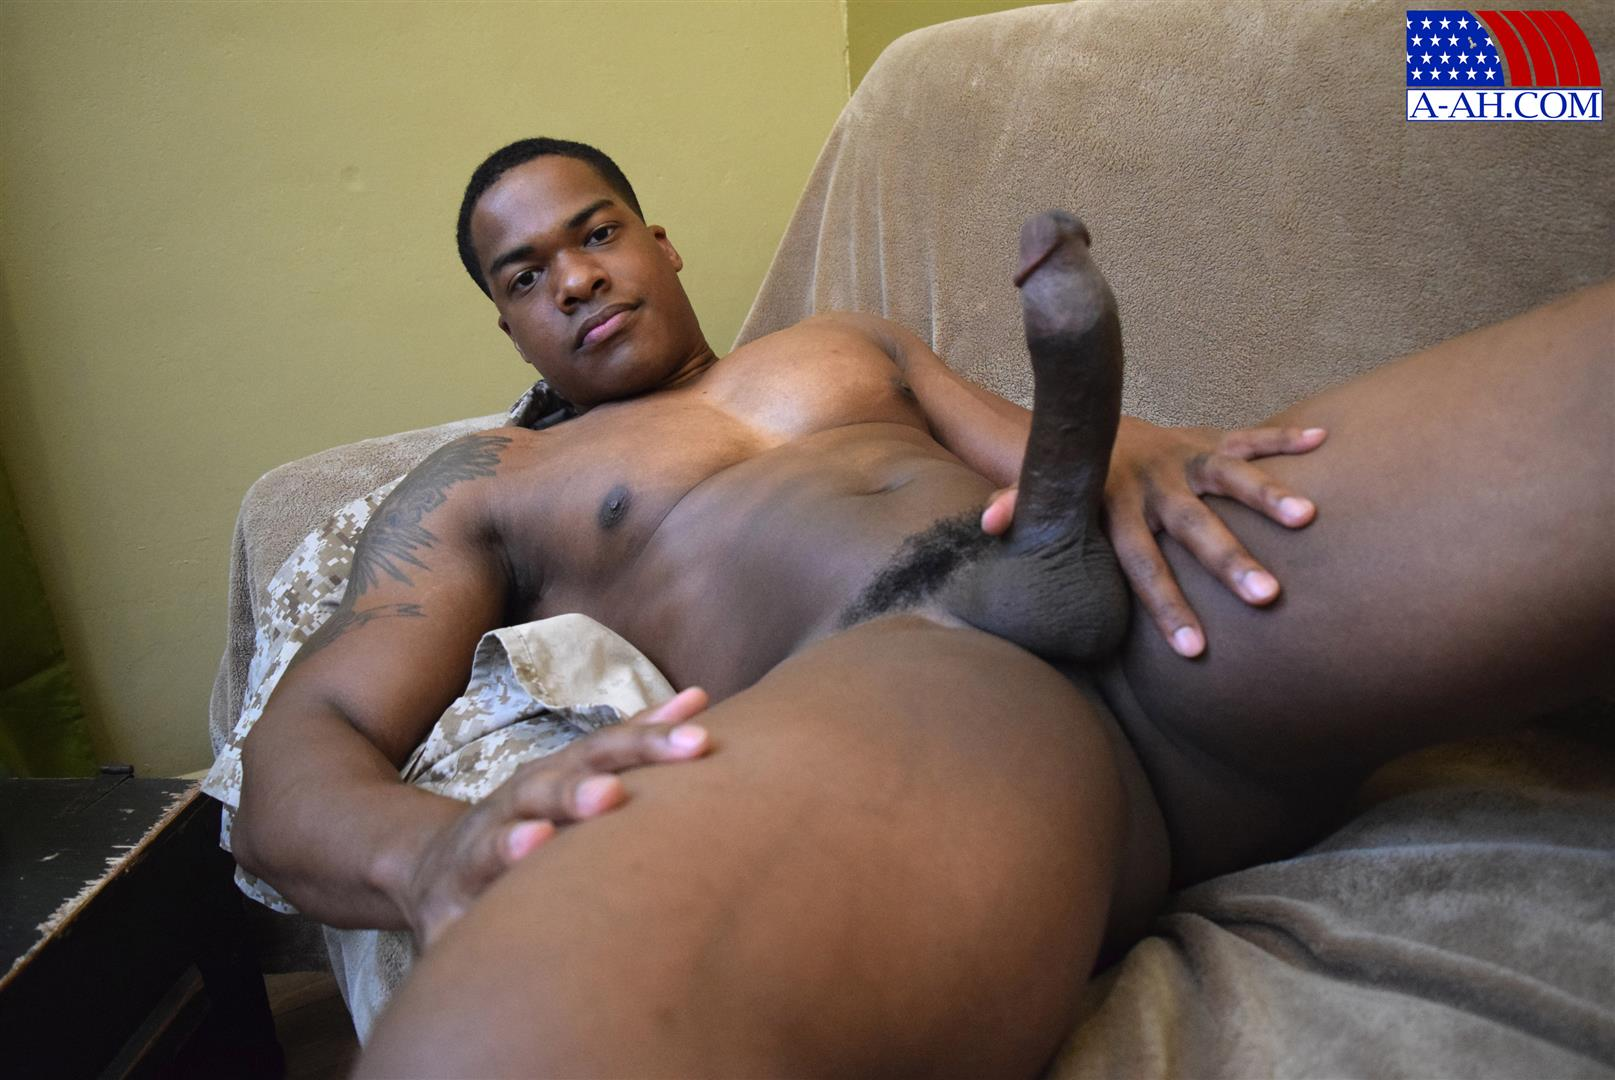 Big Dick Jerking Off Bed